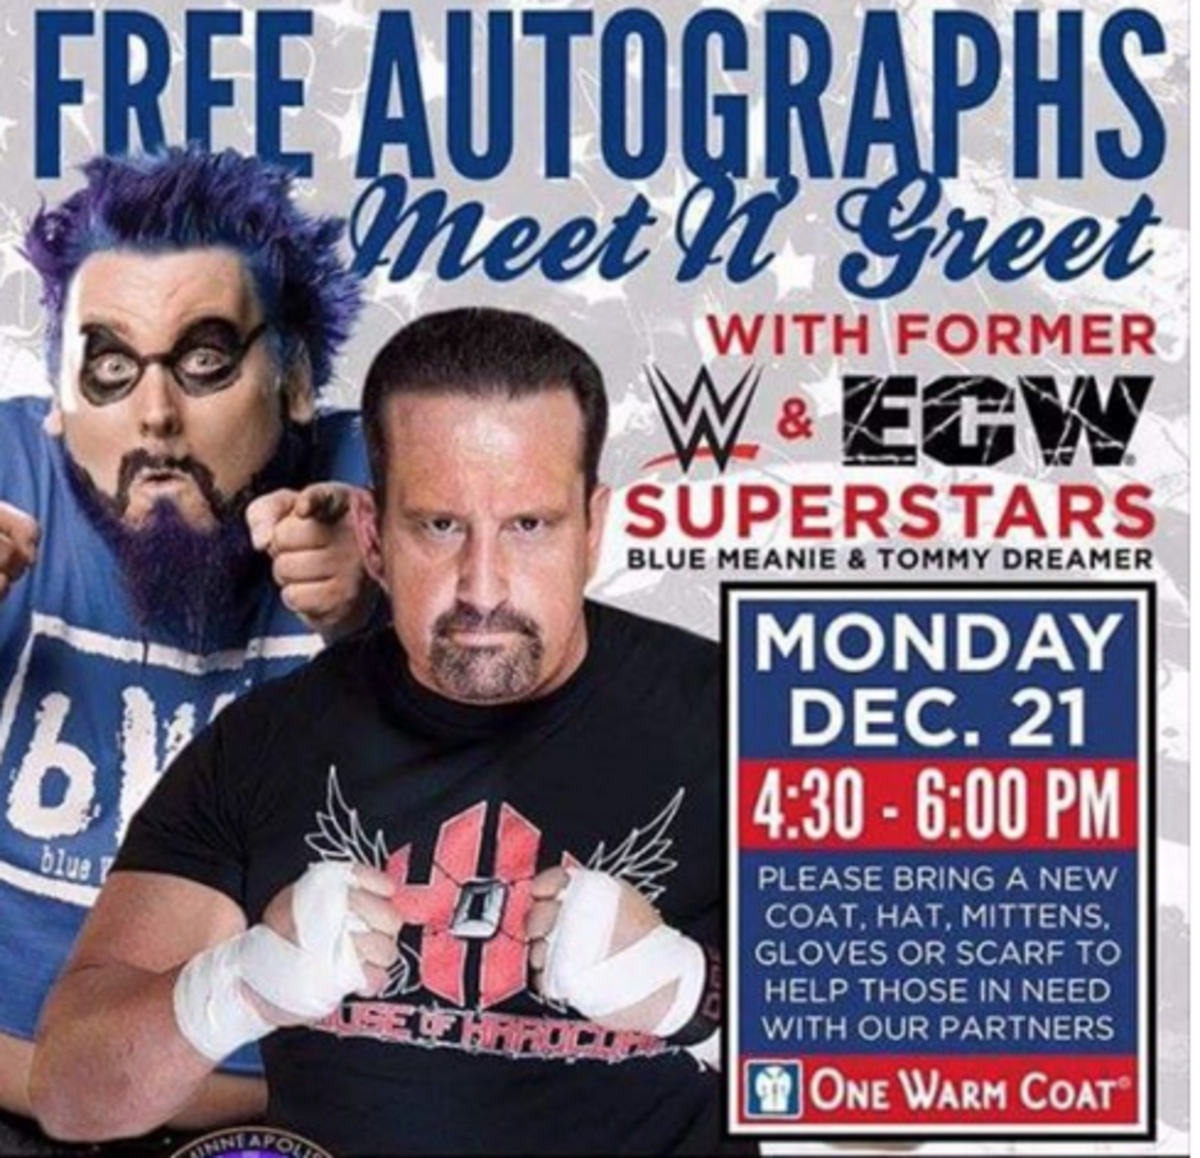 Blue Meanie & Tommy Dreamer